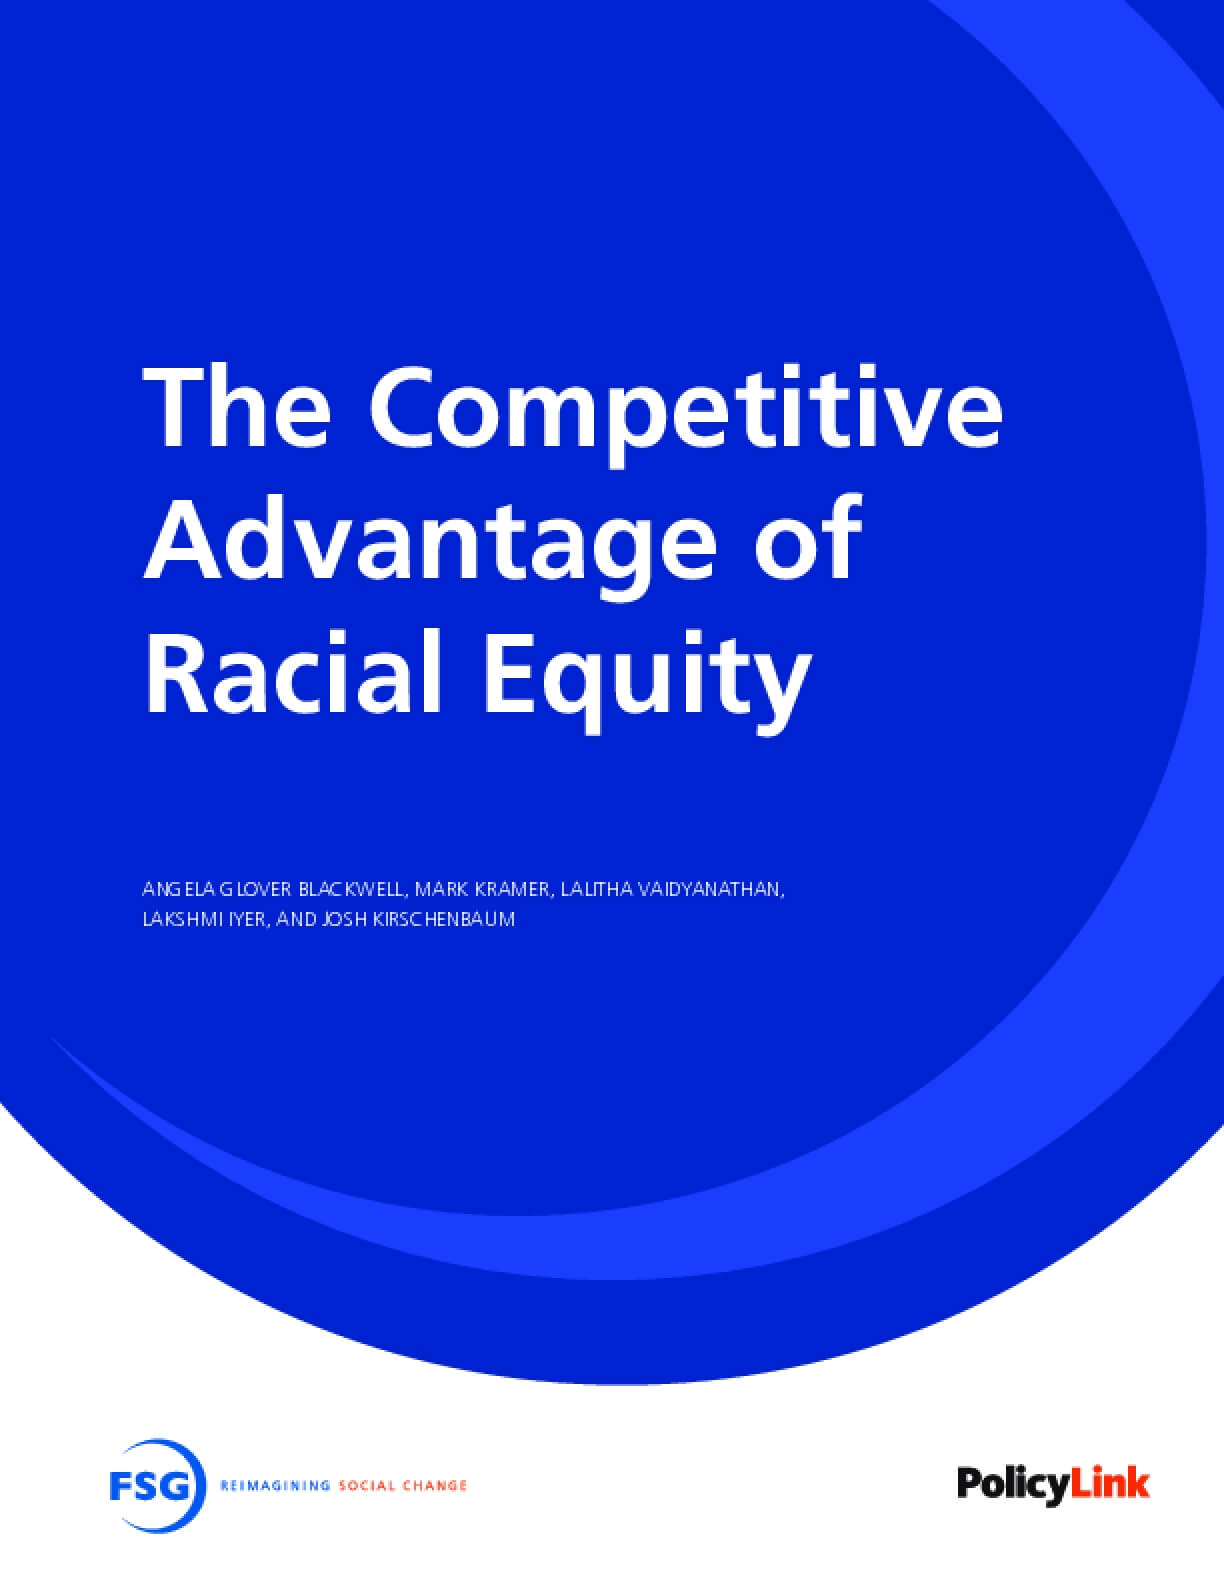 The Competitive Advantage of Racial Equity